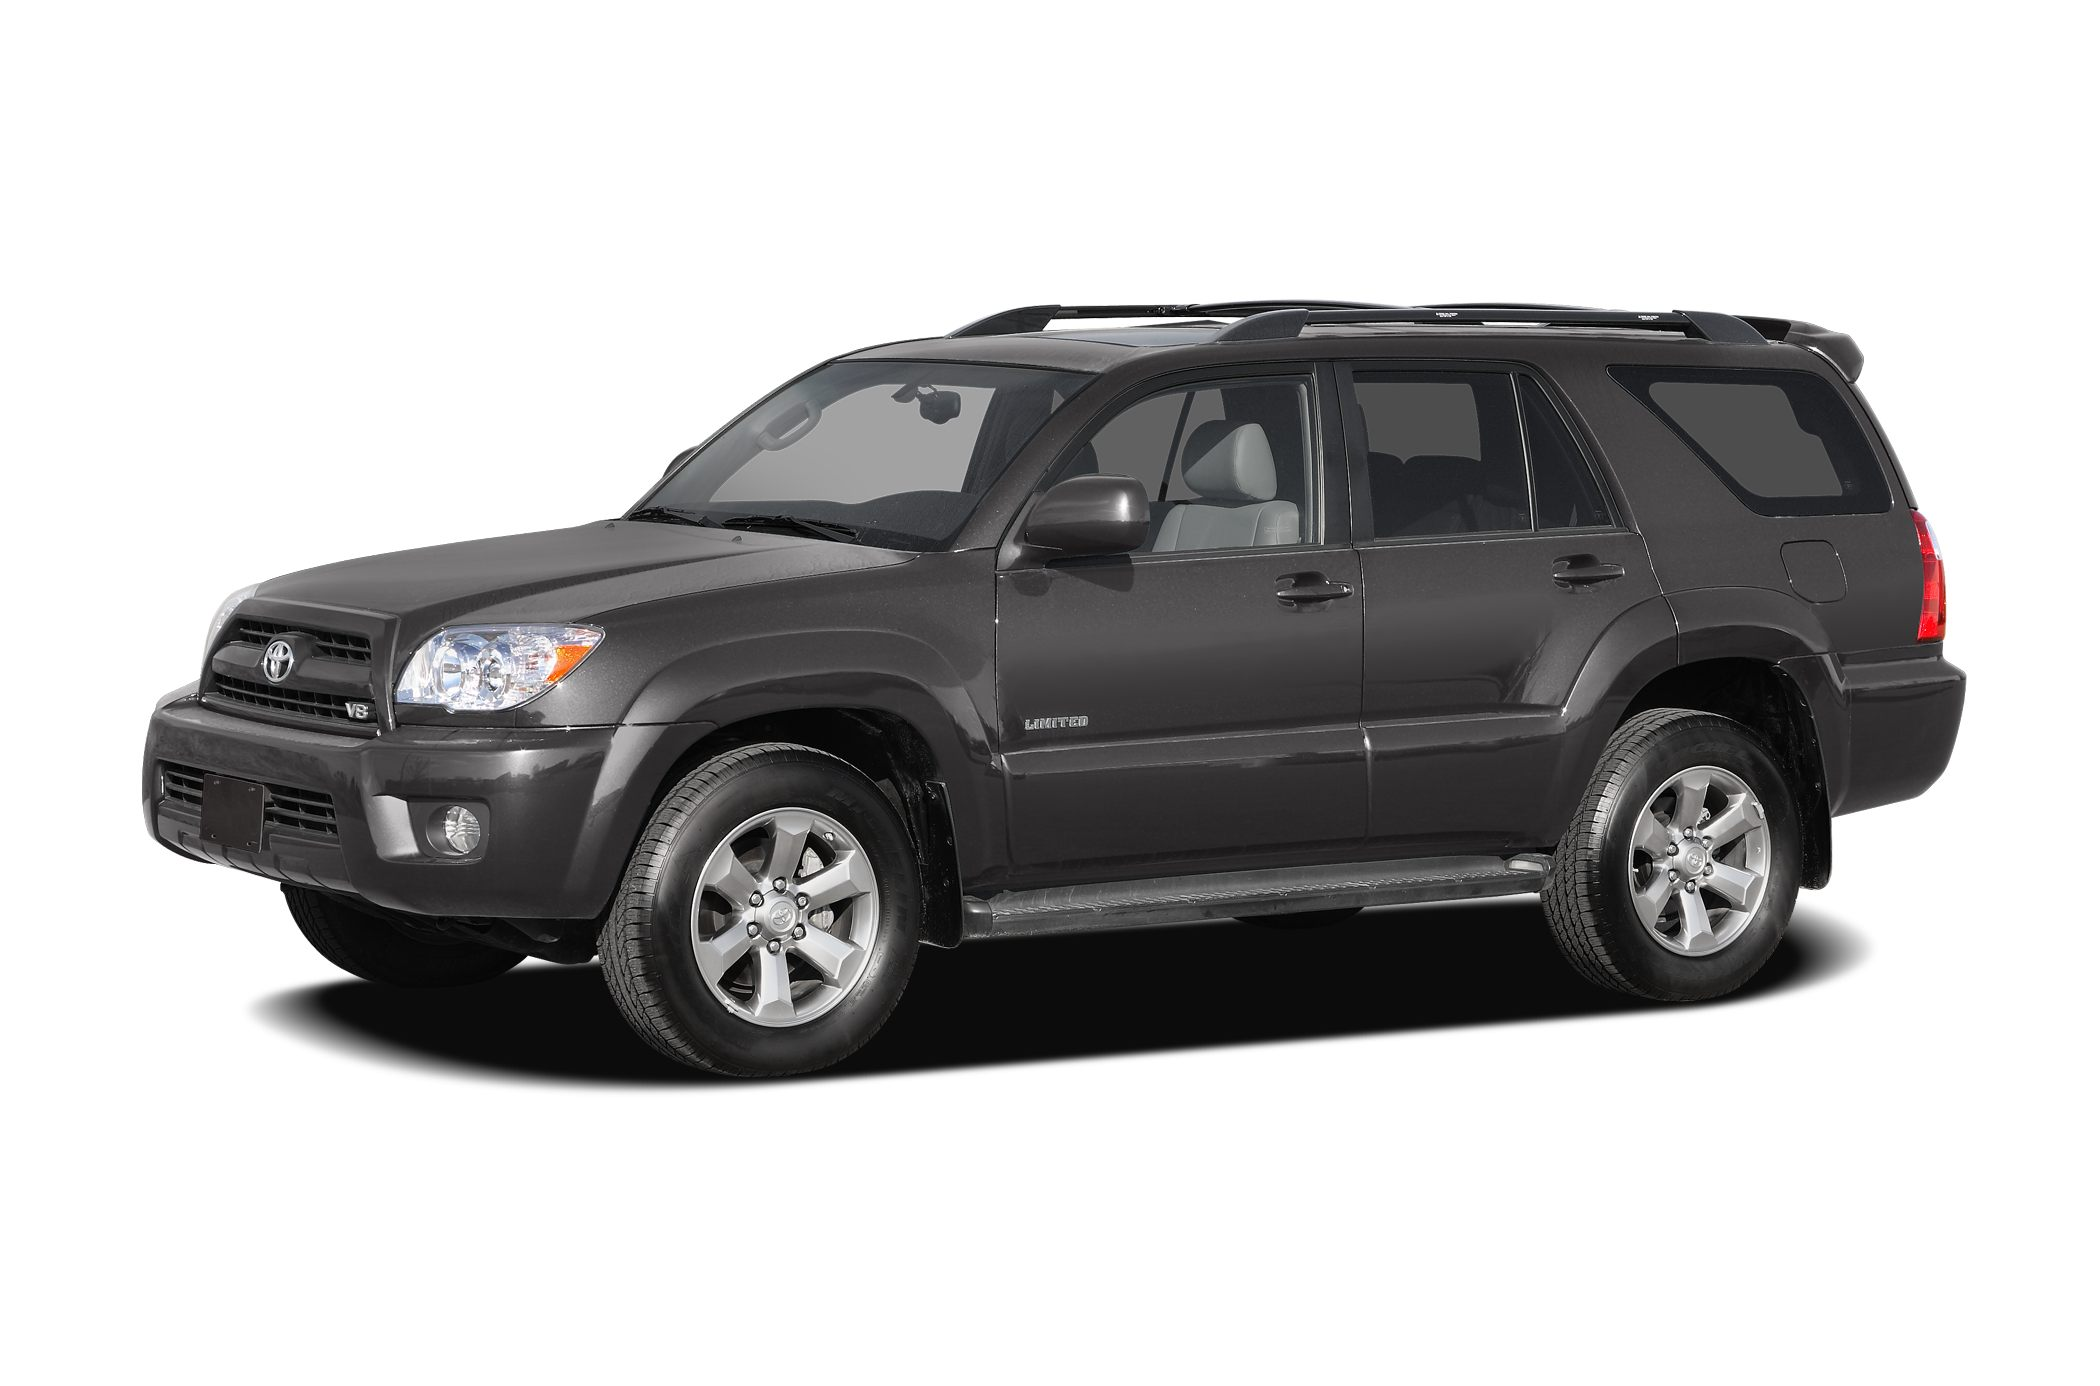 2006 Toyota 4Runner SR5 SUV for sale in Fargo for $15,339 with 85,877 miles.